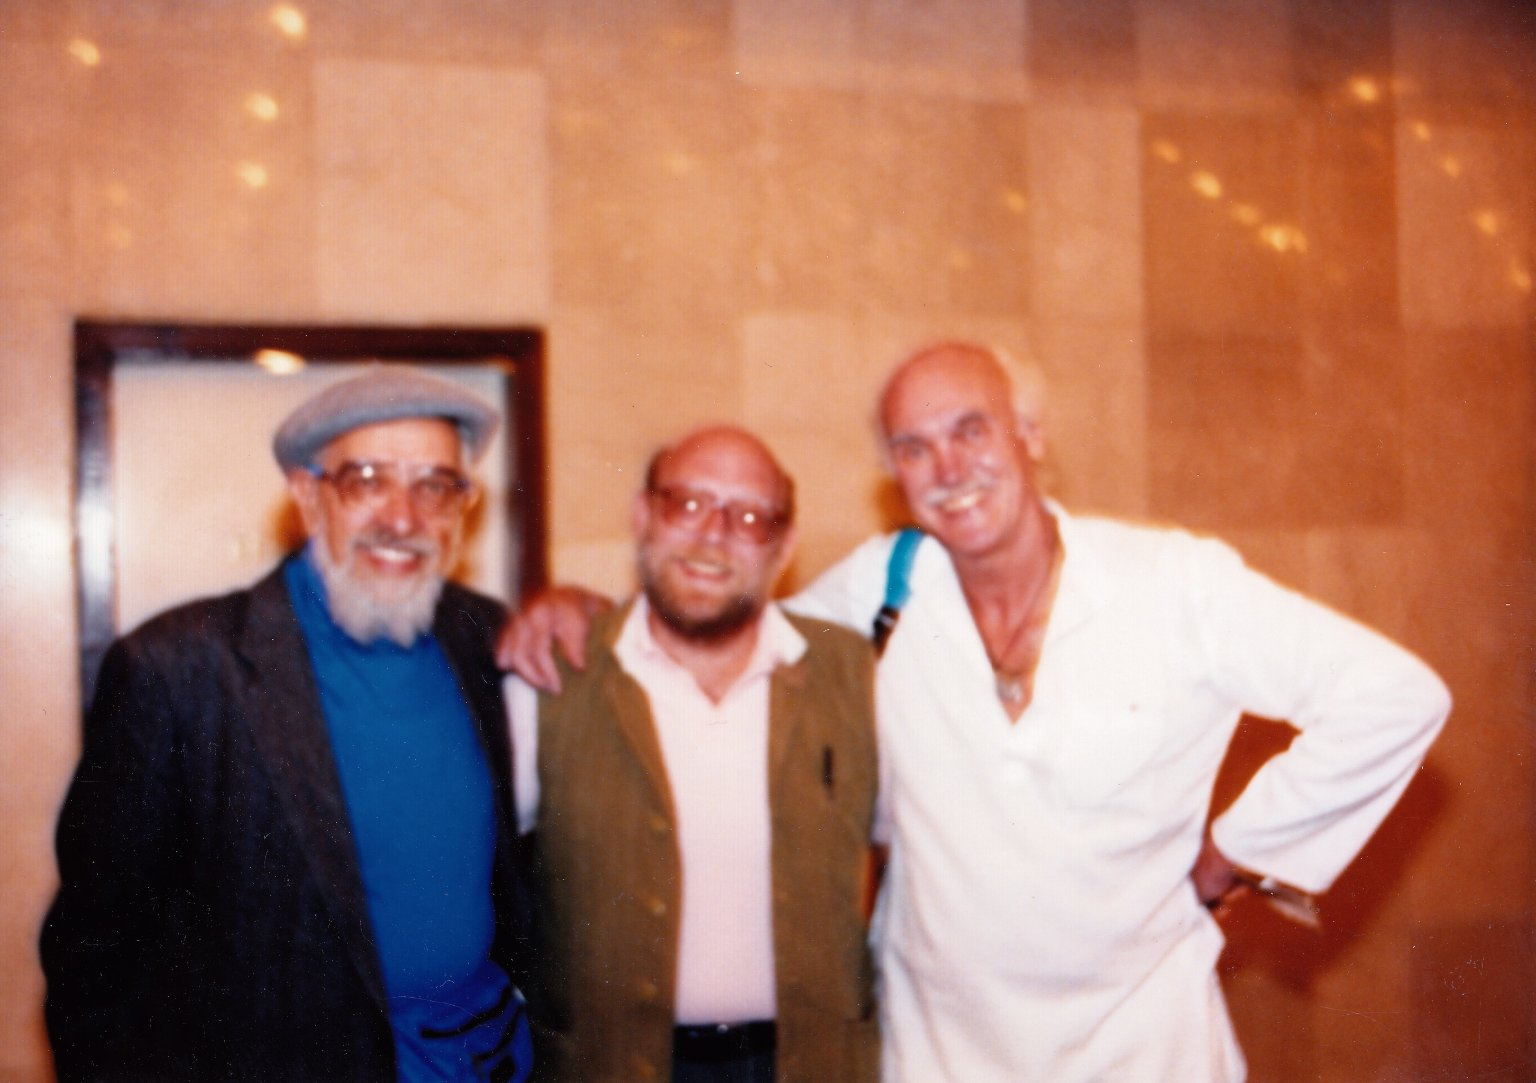 Rabbi Zalman Schachter-Shalomi, Dr. Nathan Katz, and Ram Dass in India, Fall 1990.